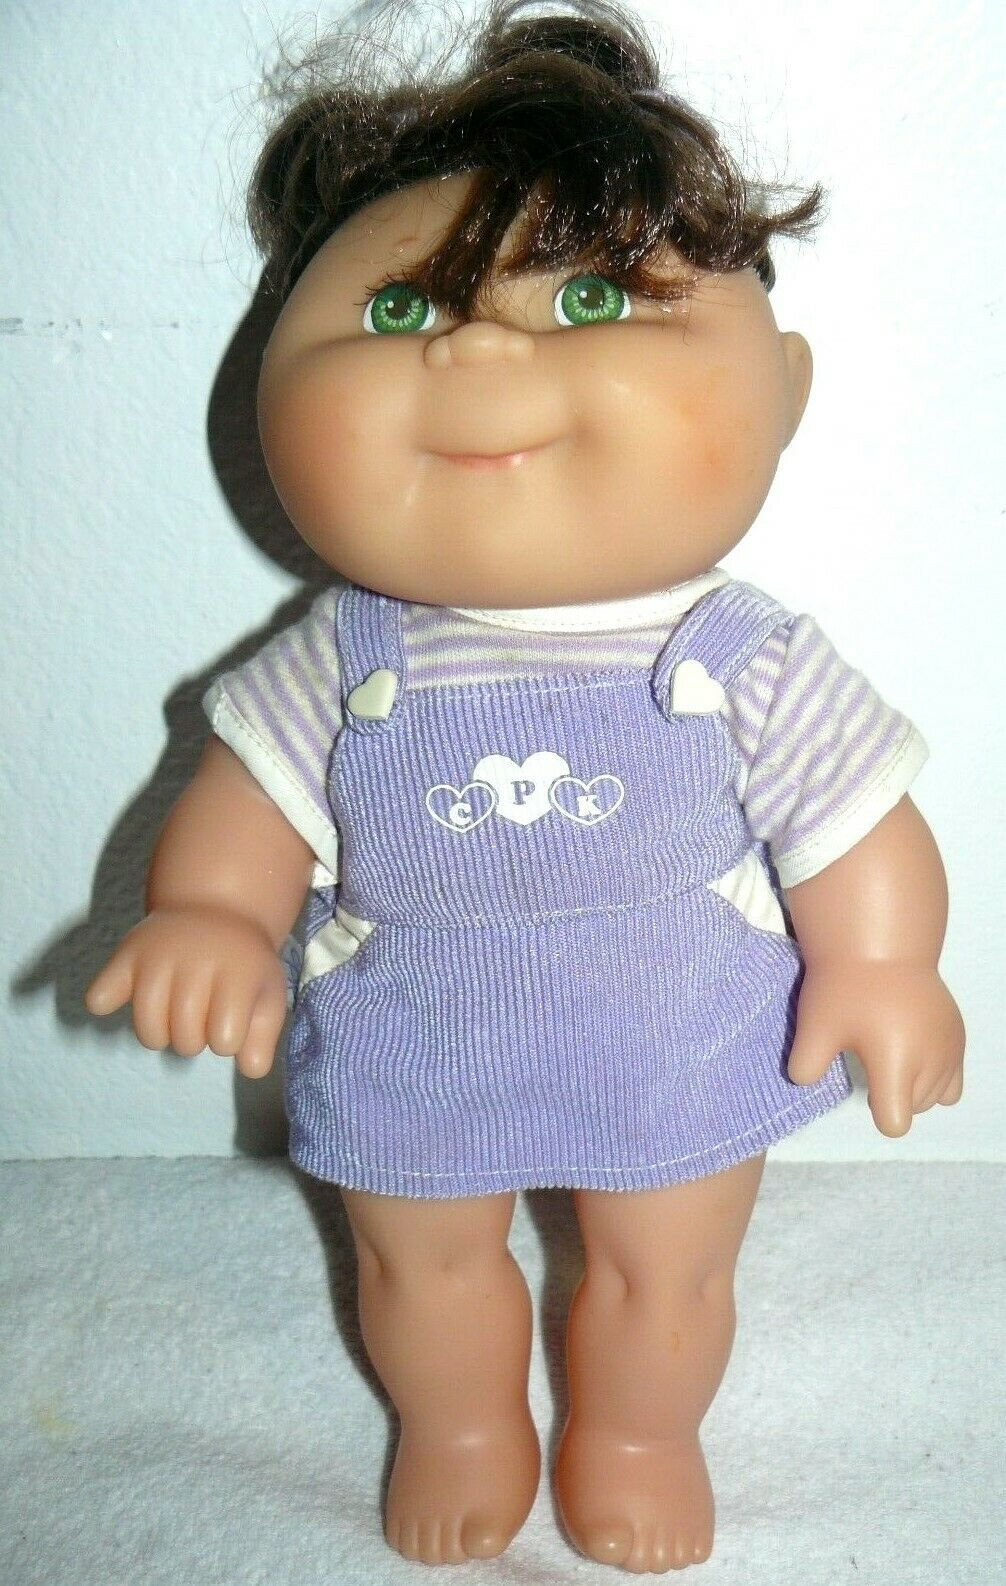 Mattel Copyright O.A.A. Girl Doll in Purple and 50 similar items